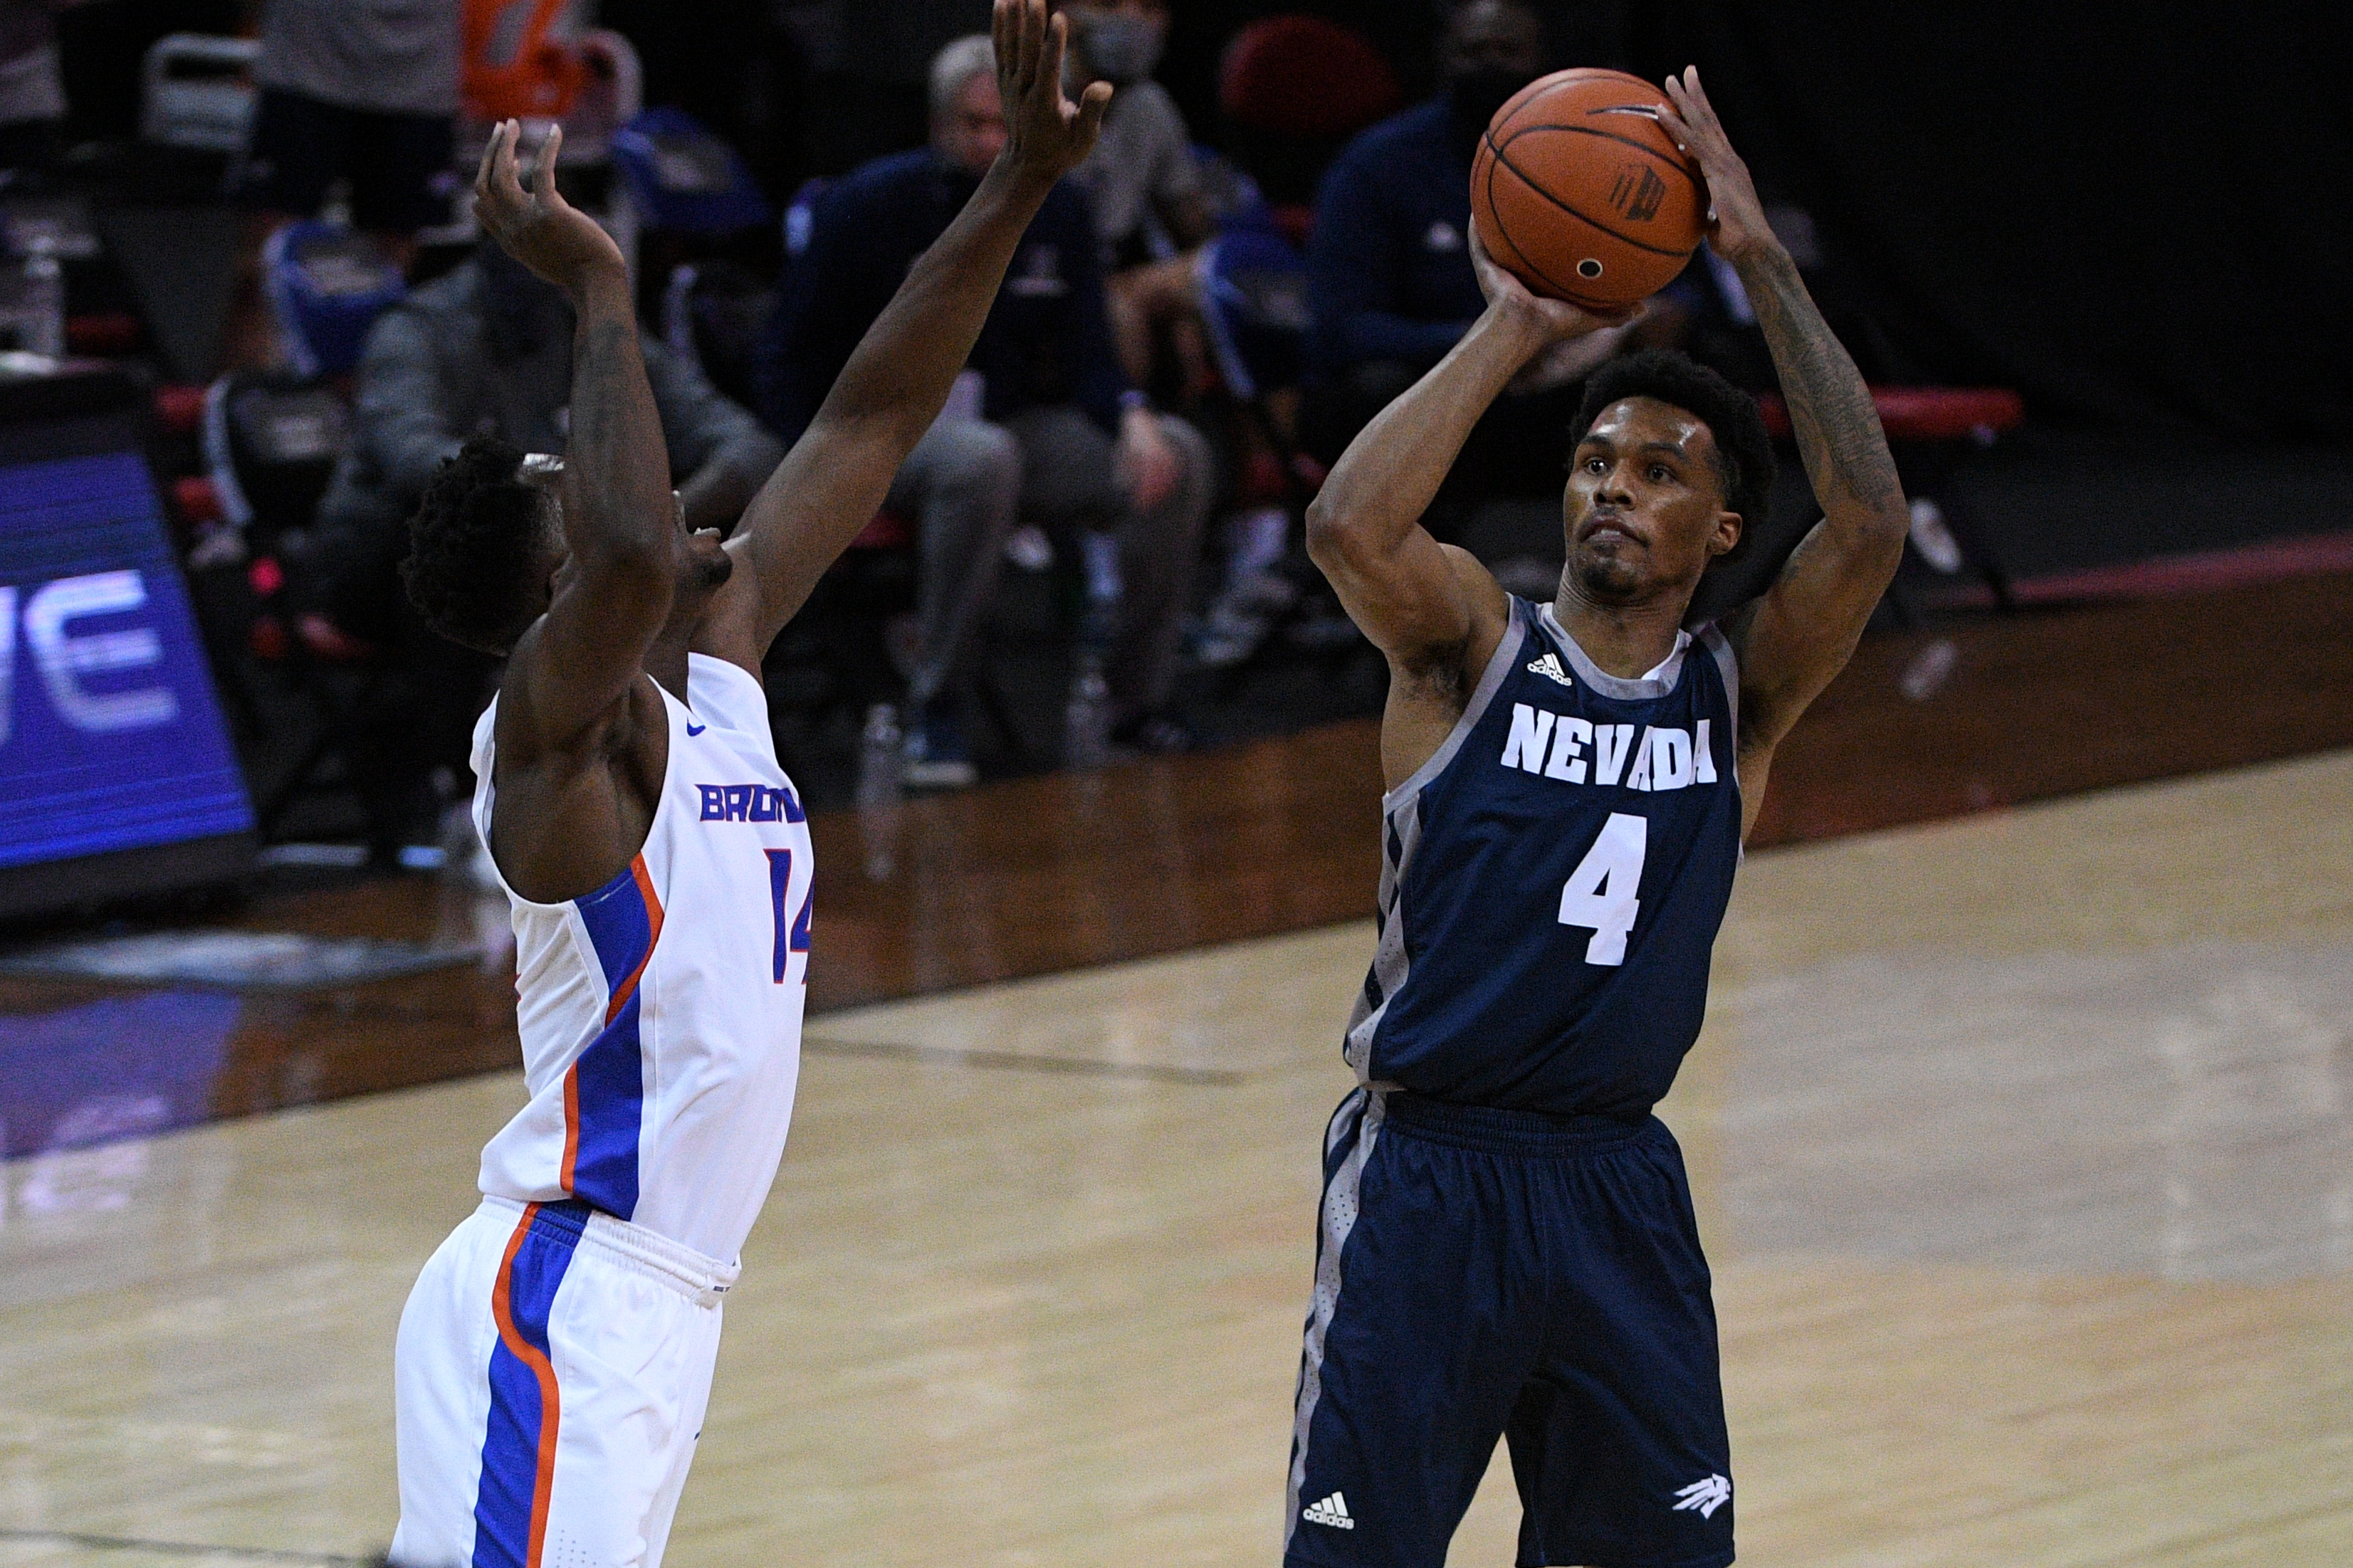 NCAA Basketball: Mountain West Conference Tournament- Nevada vs Boise St.